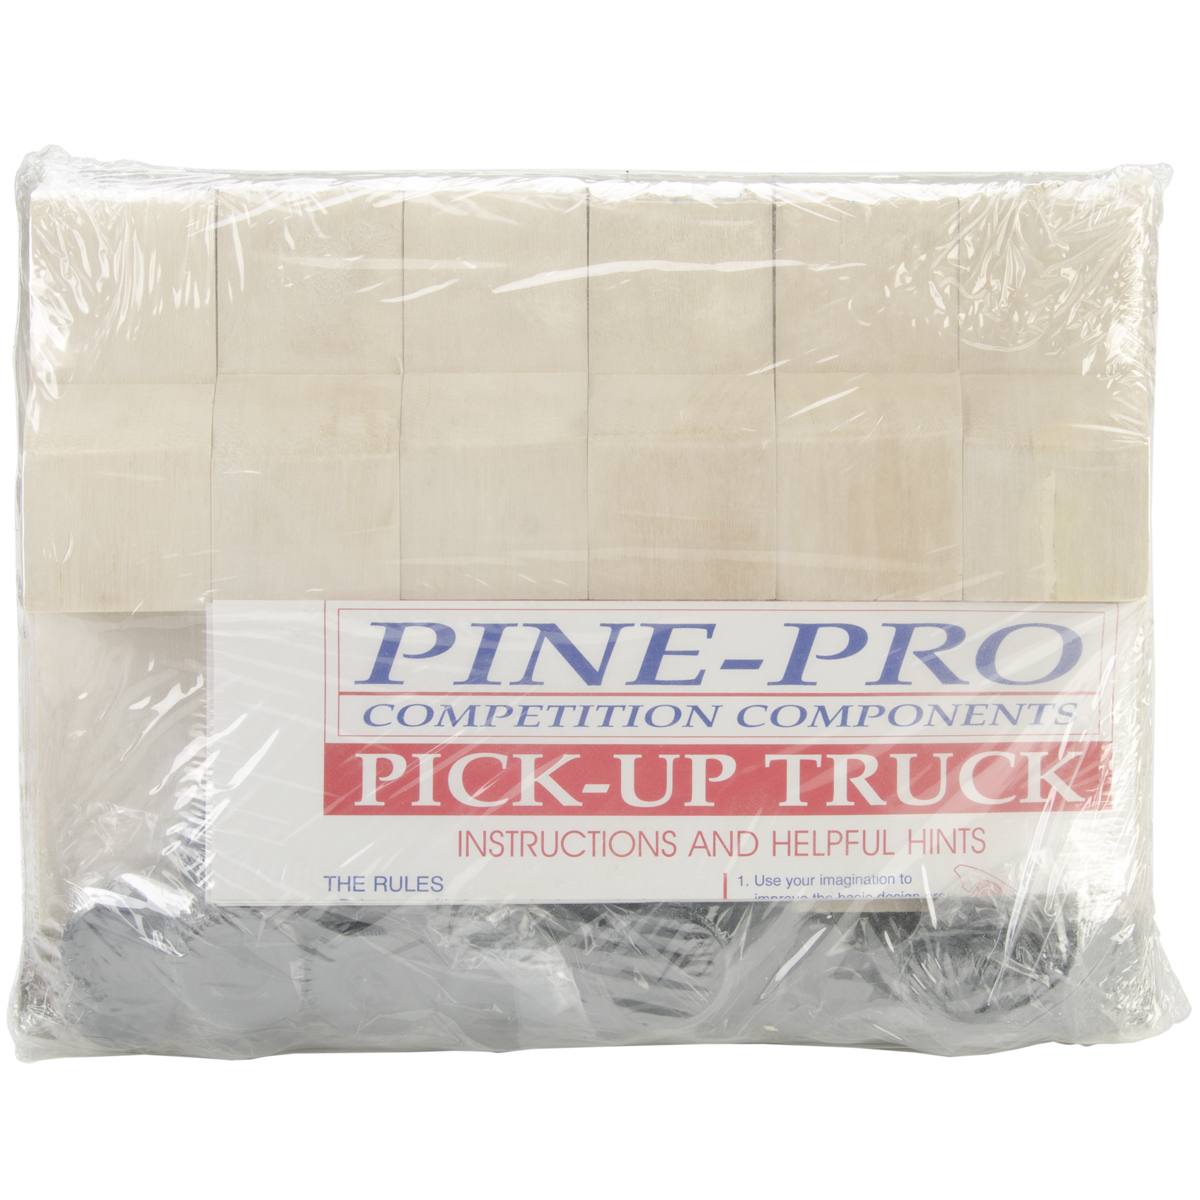 Pinepro Pine Car Derby Bulk Pack Kit, 6 per pkg, Pick-Up Truck W/Wheels And Axles